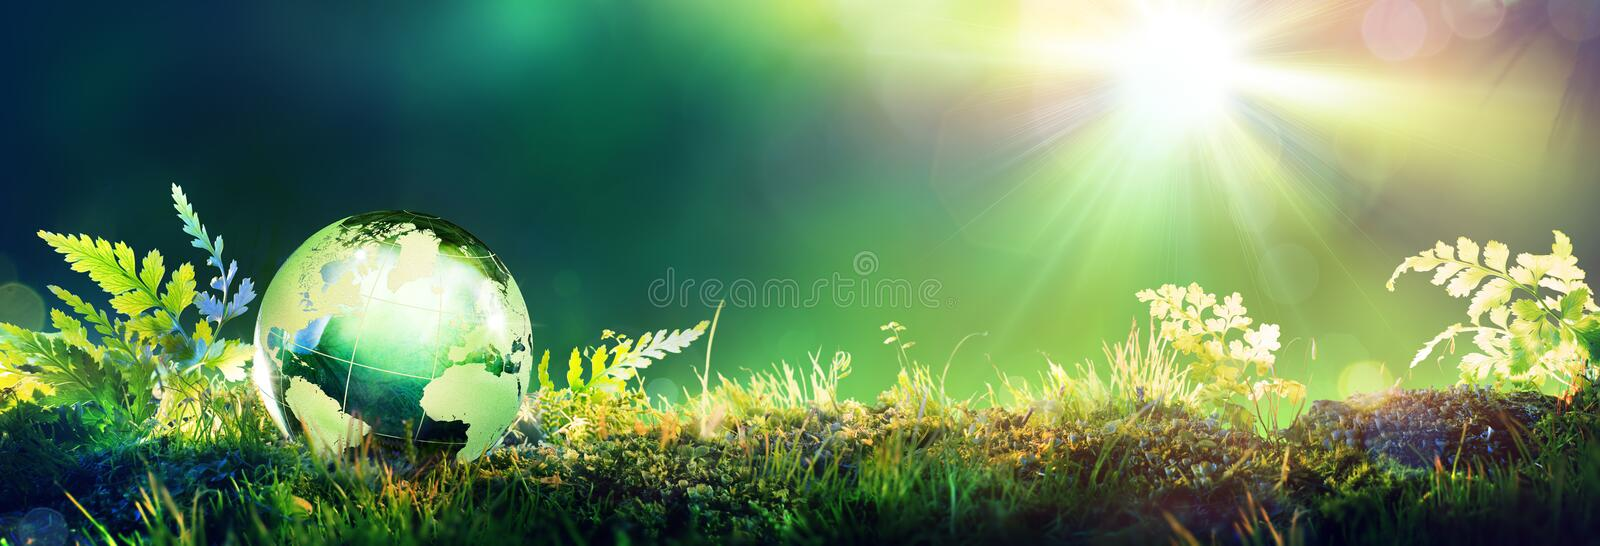 Green Globe On Moss royalty free stock photography